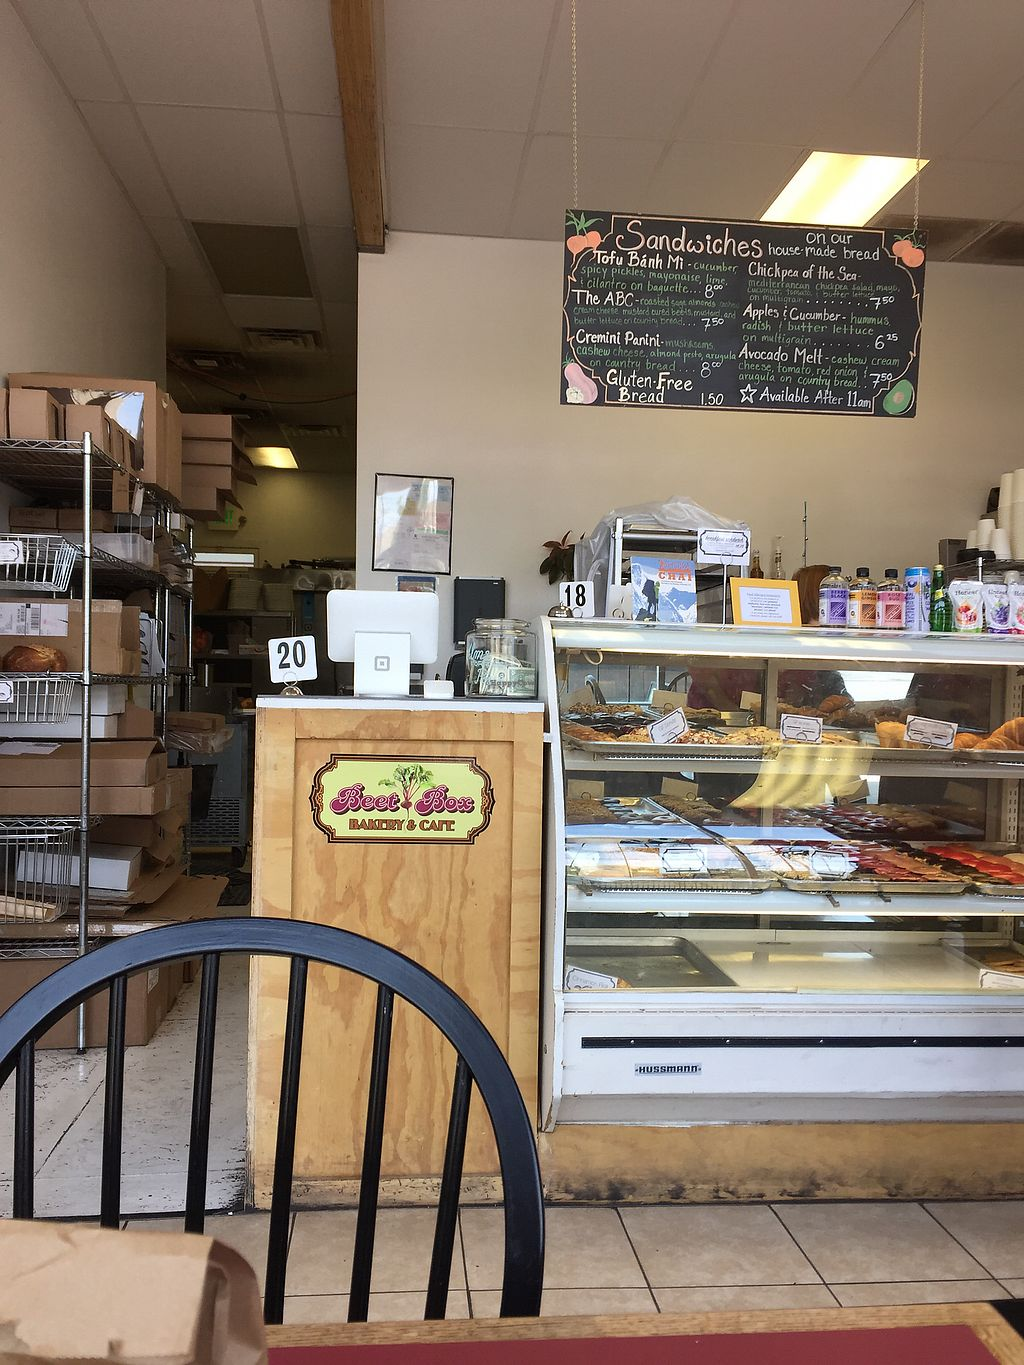 "Photo of Beet Box Bakery and Cafe  by <a href=""/members/profile/zoeetz123456"">zoeetz123456</a> <br/>❤️ <br/> August 8, 2017  - <a href='/contact/abuse/image/32467/290497'>Report</a>"